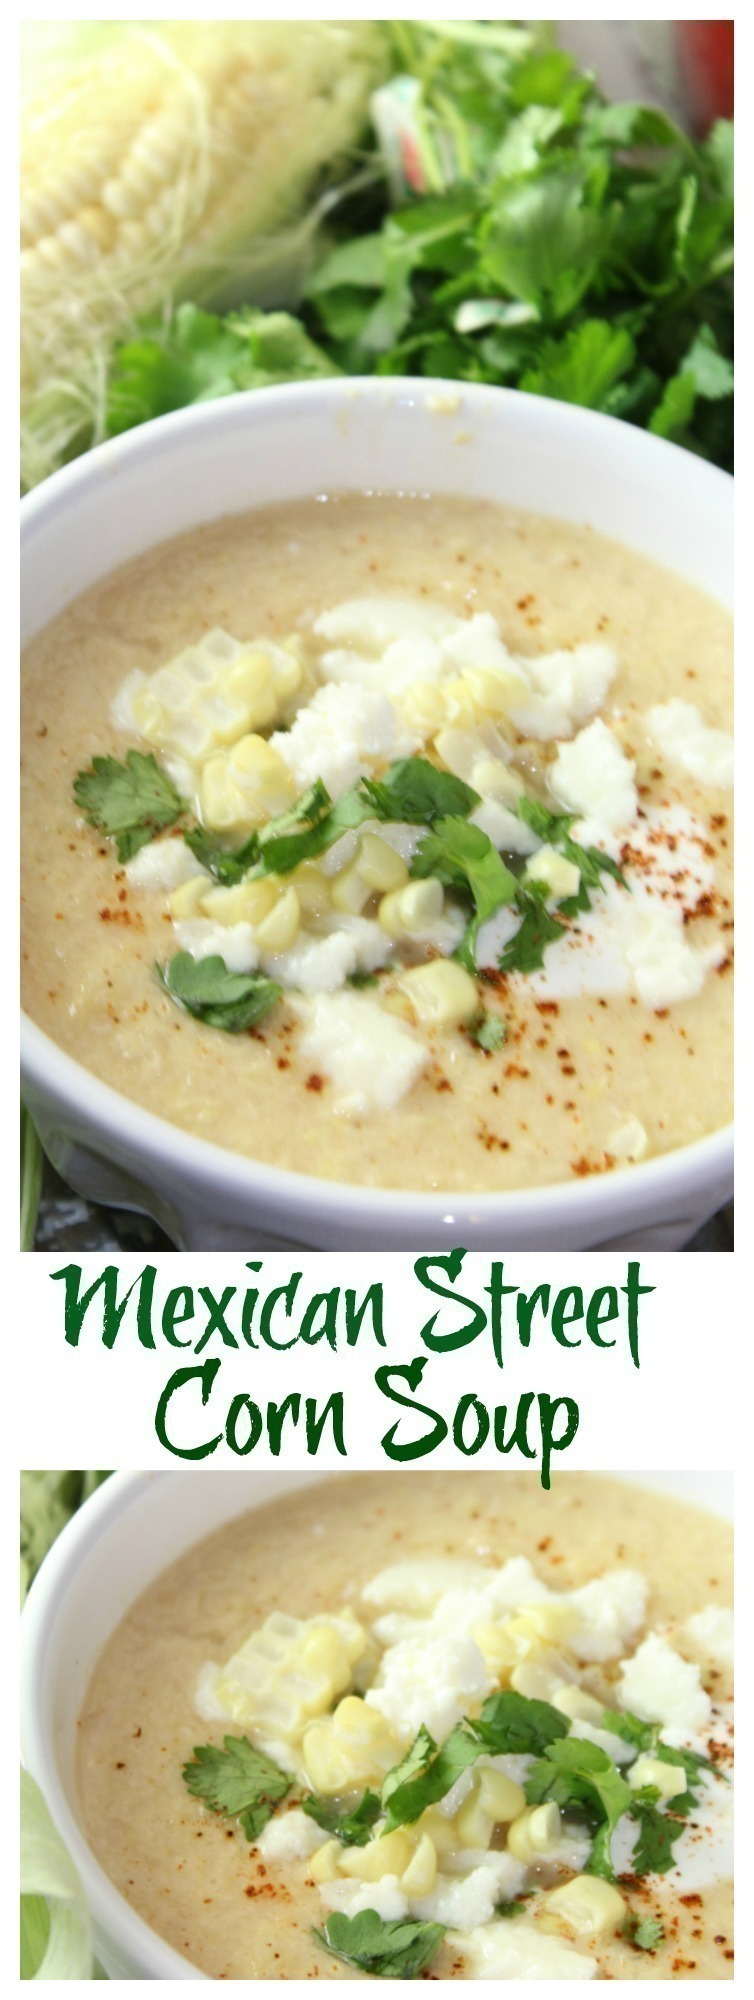 All of your favorite flavors of Mexican street corn wrapped into a deliciously creamy soup.